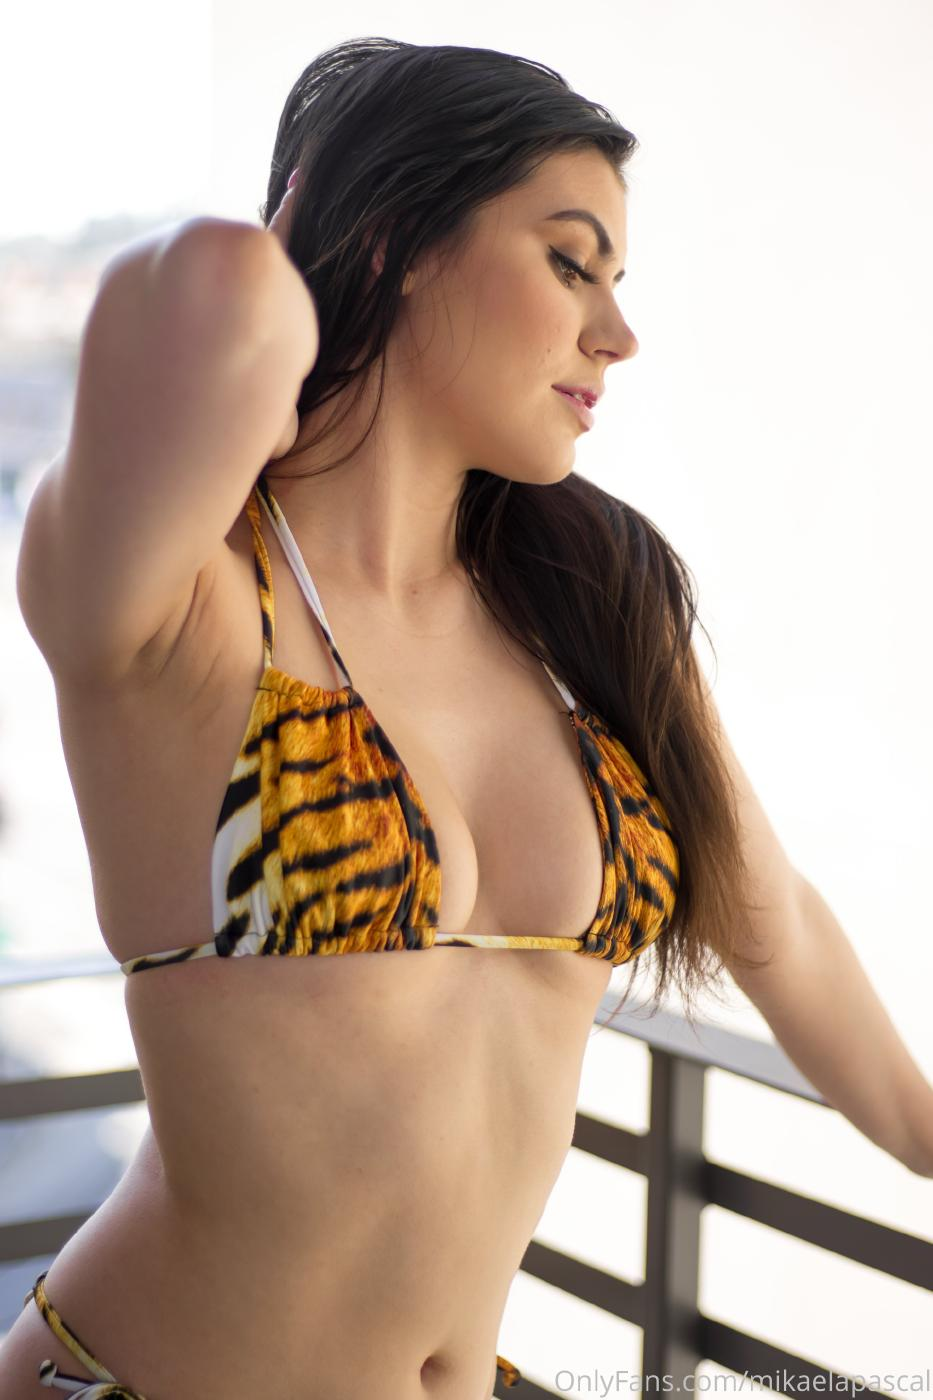 Mikaela Pascal Nude Tiger Bikini Photos Leaked 0005